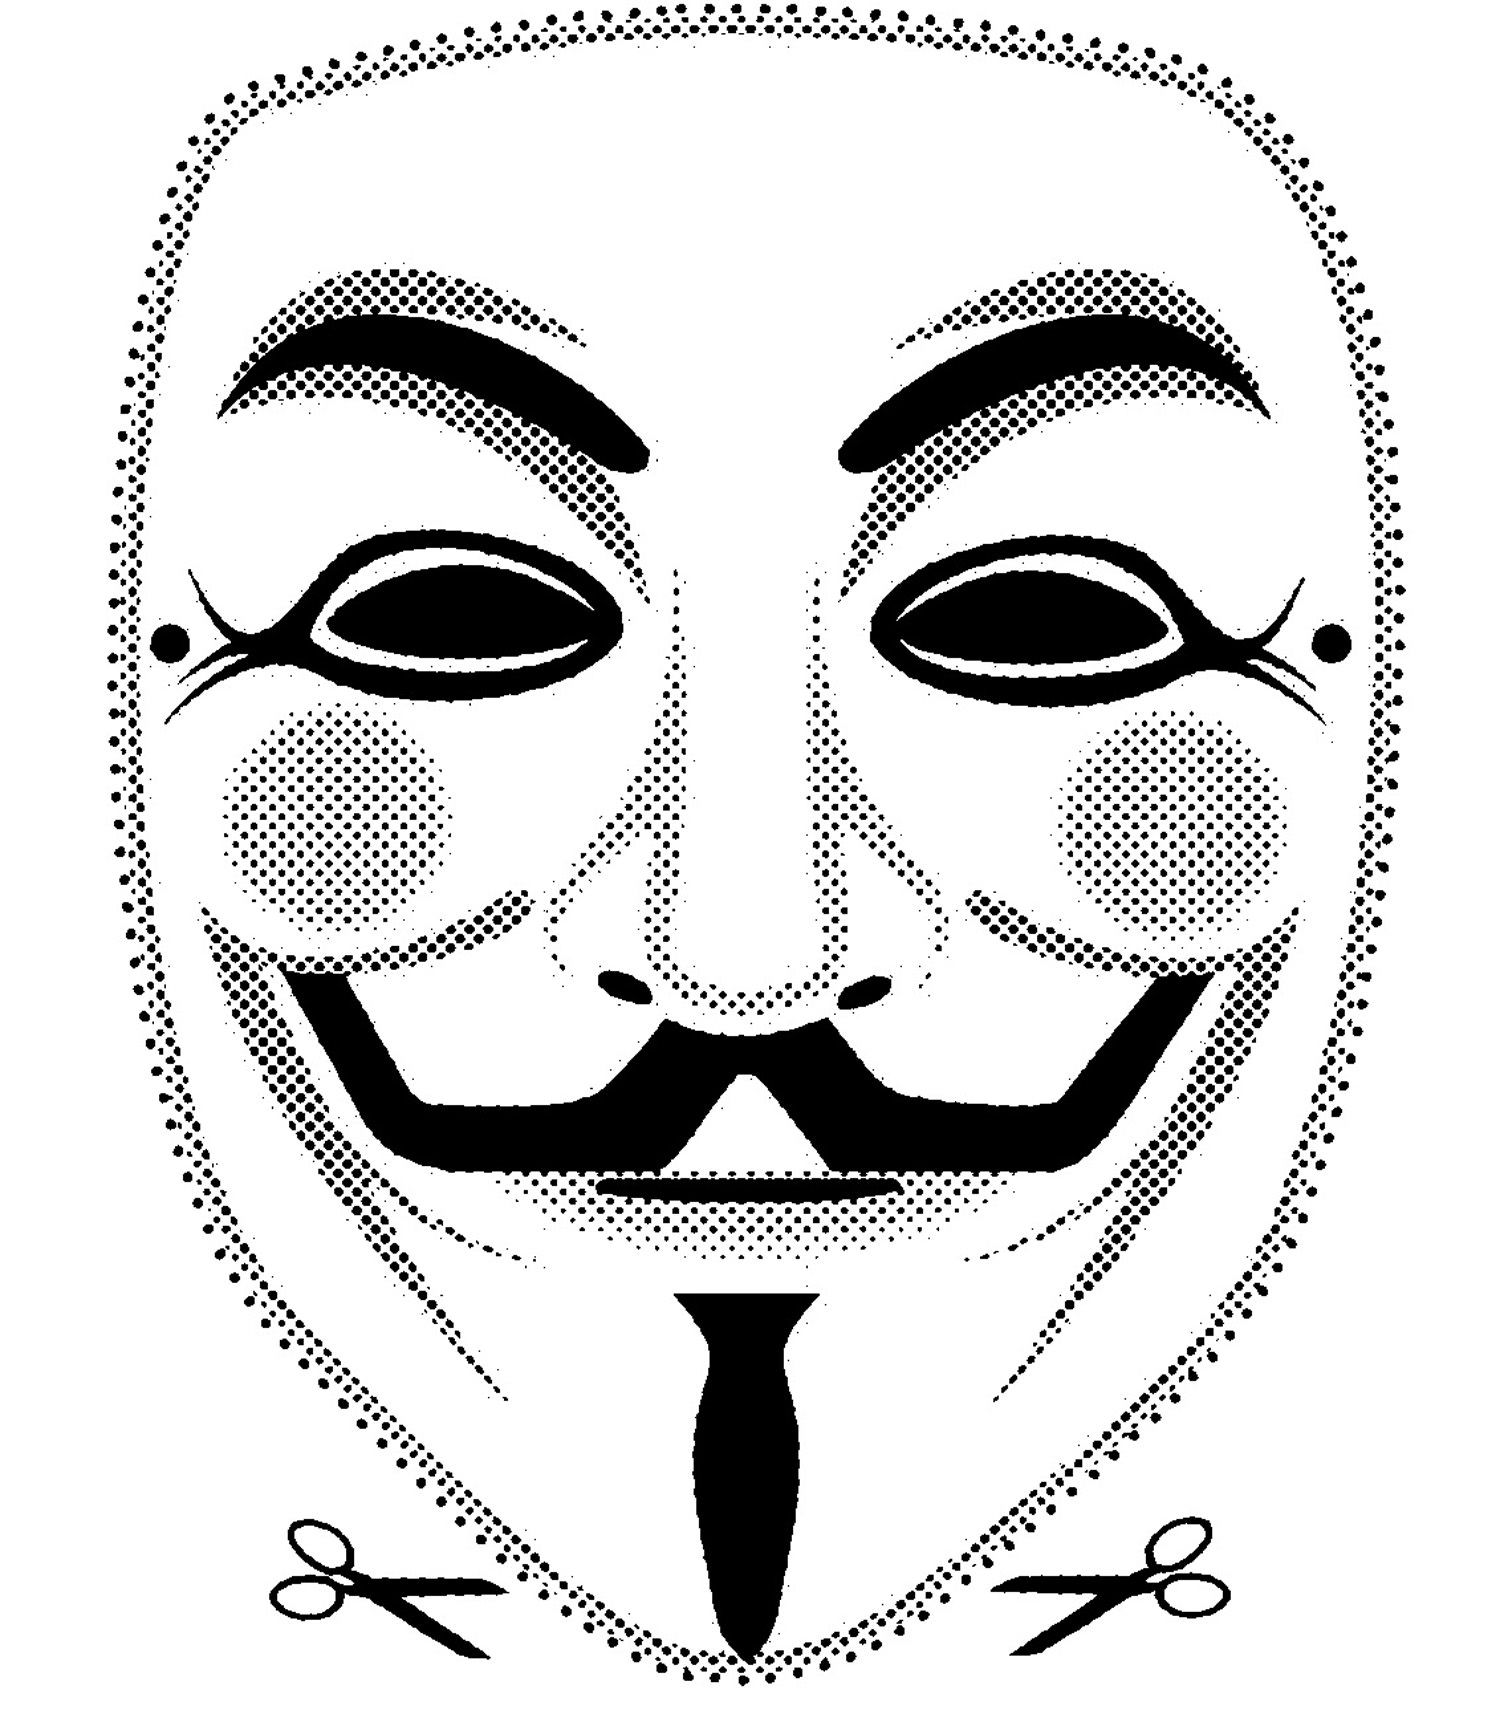 1500x1714 3 High Quality Printable Vendetta Guy Fawkes Mask Cut Out